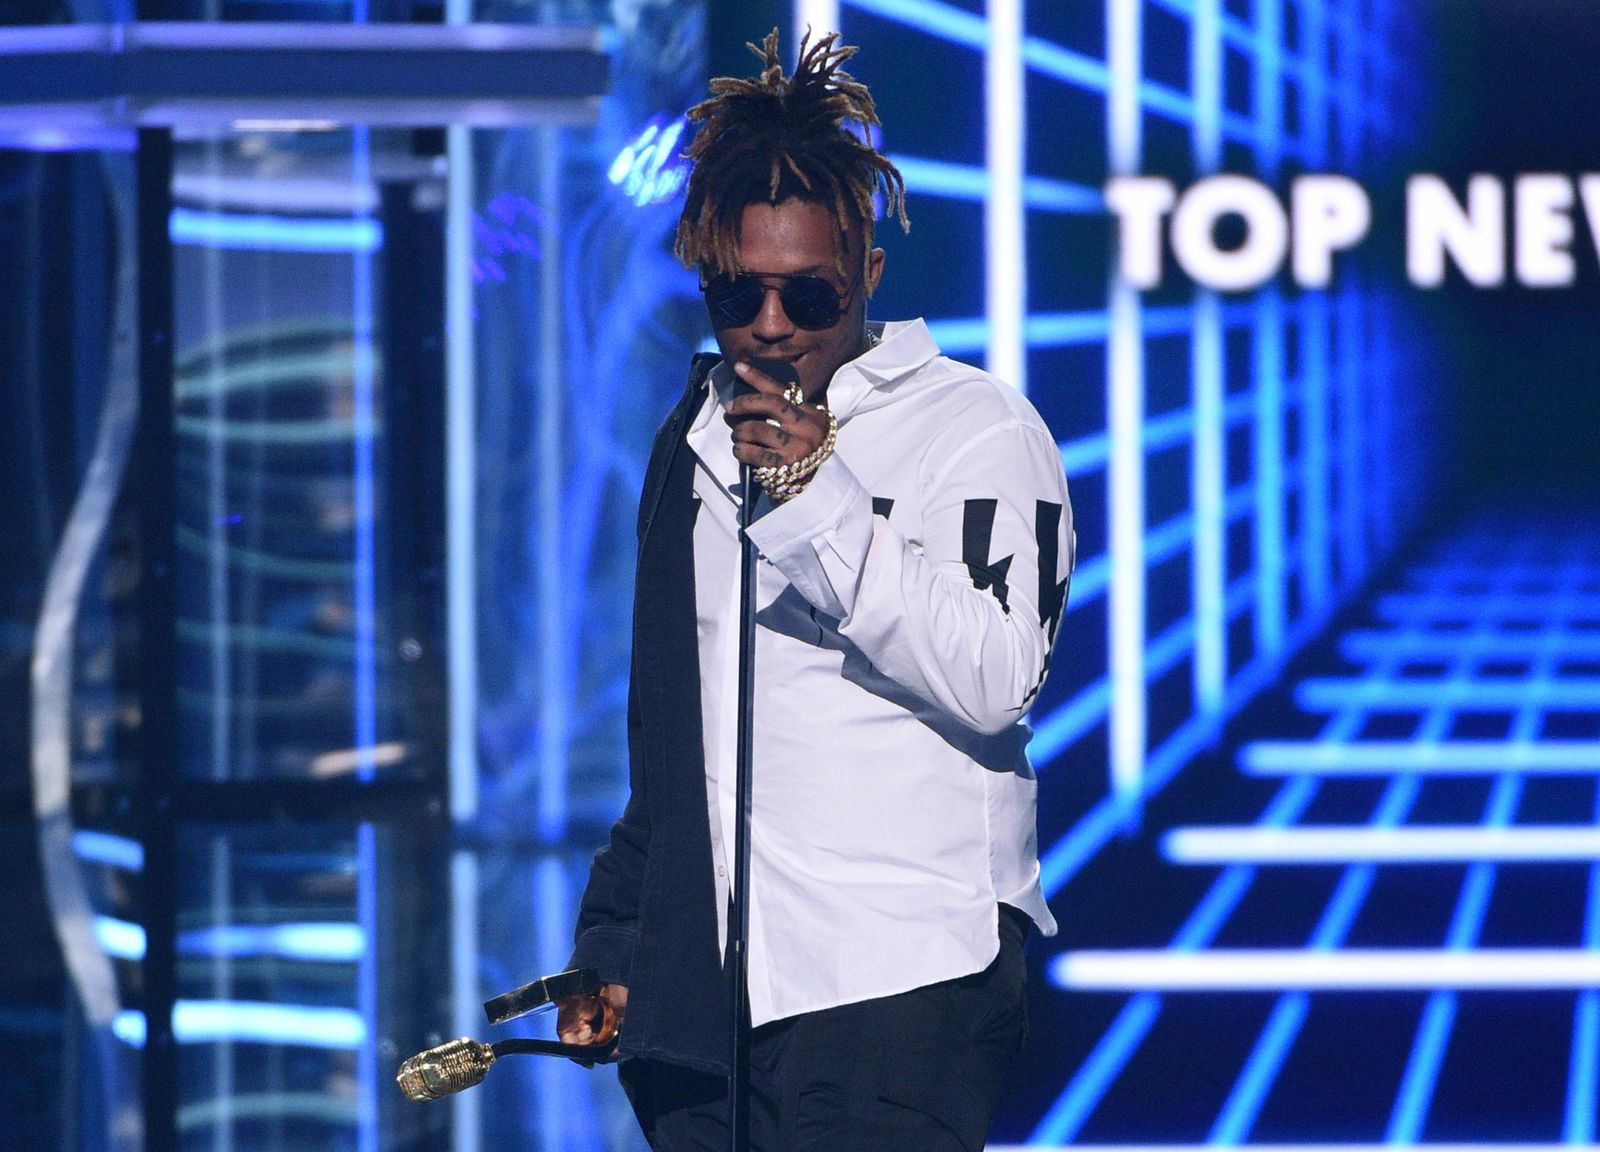 "FILE - In this May 1, 2019 file photo, Juice WRLD accepts the award for top new artist at the Billboard Music Awards at the MGM Grand Garden Arena in Las Vegas. The Chicago-area rapper, whose real name is Jarad A. Higgins, was pronounced dead Sunday, Dec. 8 after a ""medical emergency'' at Chicago's Midway International Airport, according to authorities. Chicago police said they're conducting a death investigation. (Photo by Chris Pizzello/Invision/AP, File)"